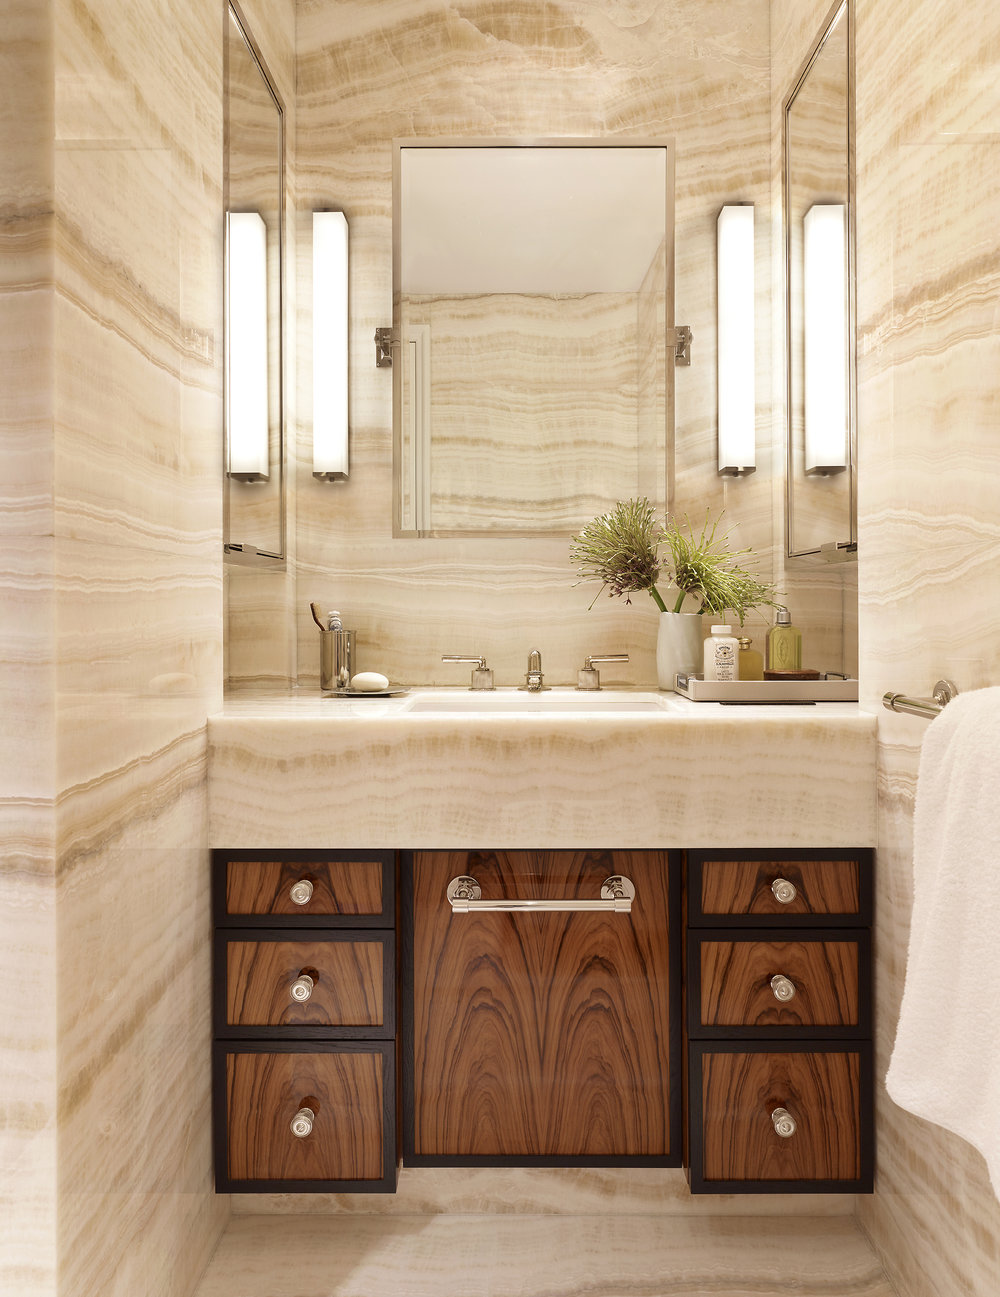 Stonefox 115 East 67th Street Bathroom MEP designed by 2LS Consulting Engineering